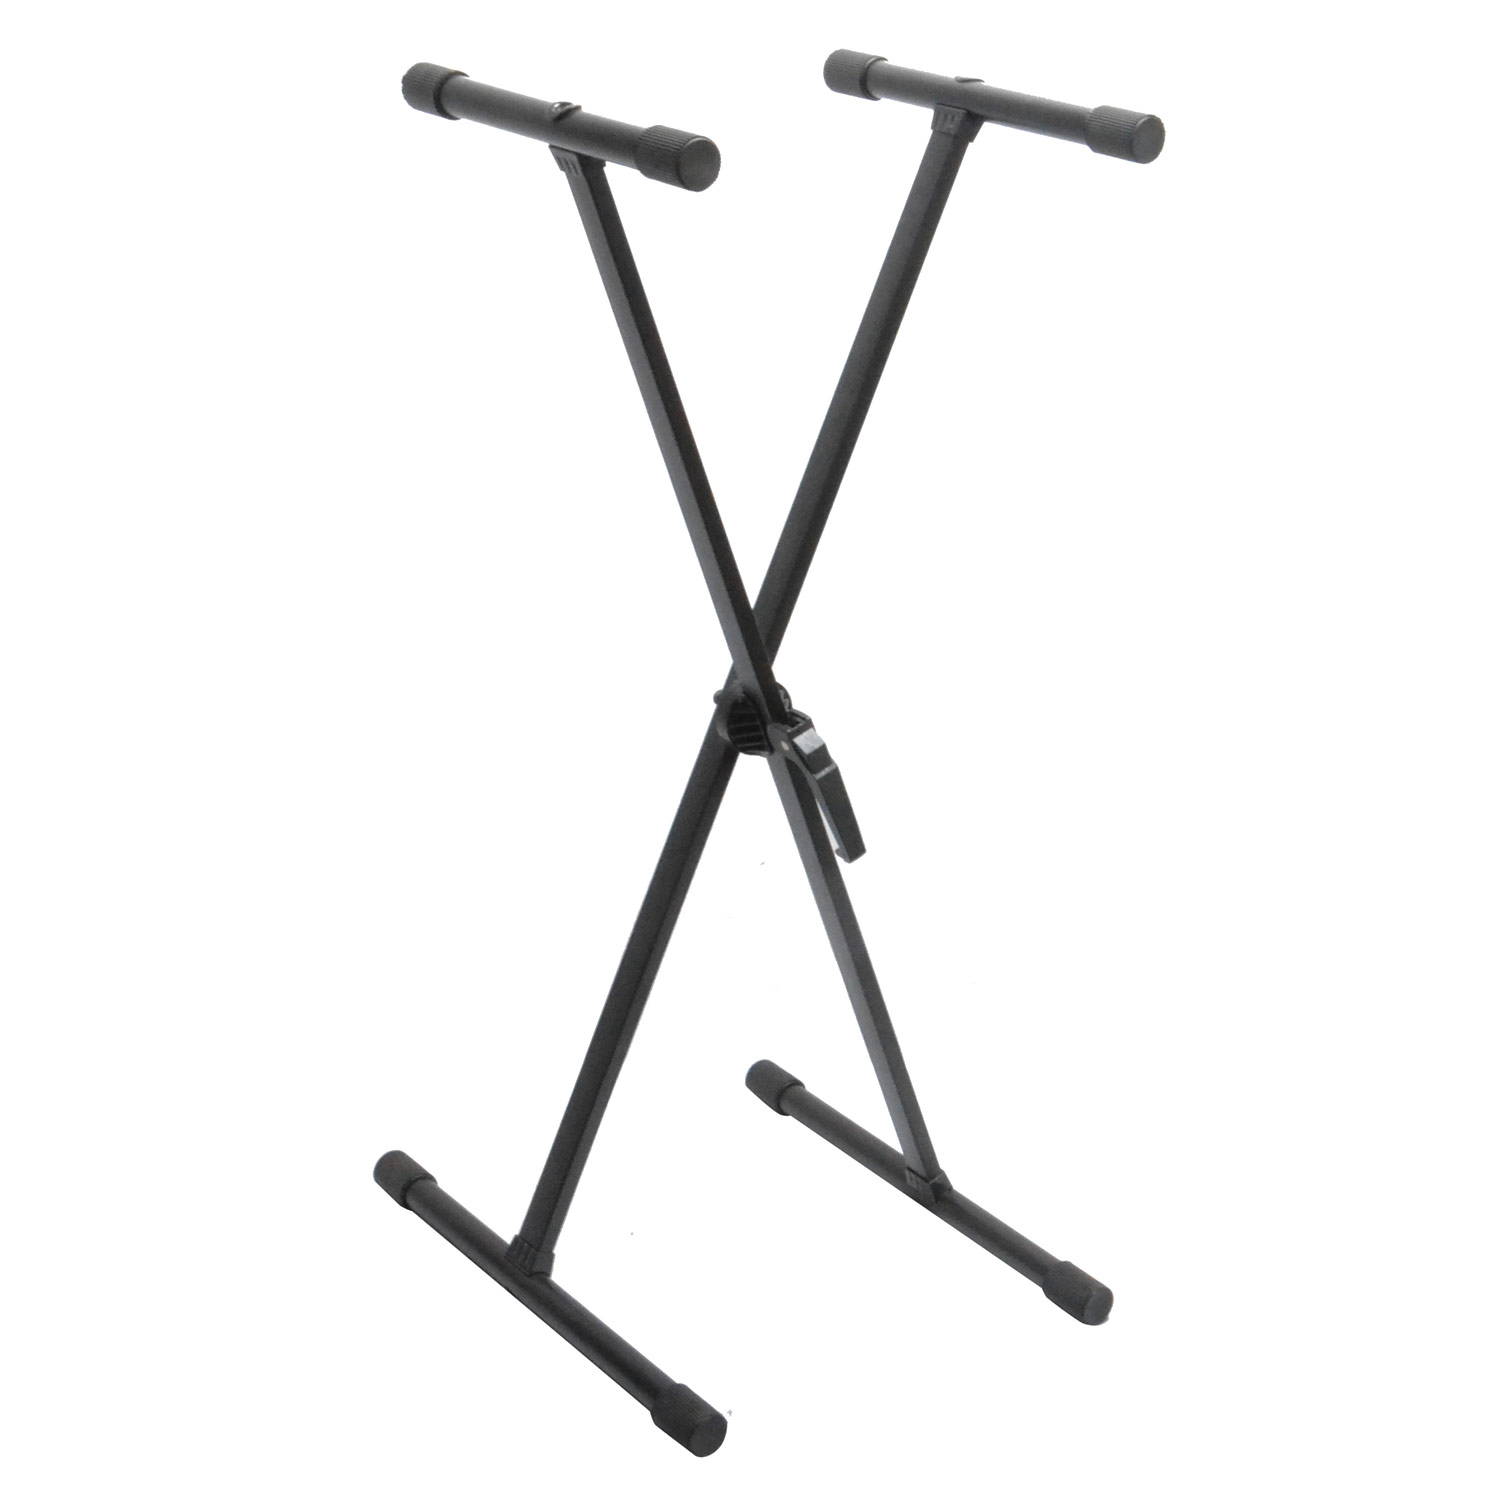 Keyboard Stand single brace self-assembly TEK audio KS320